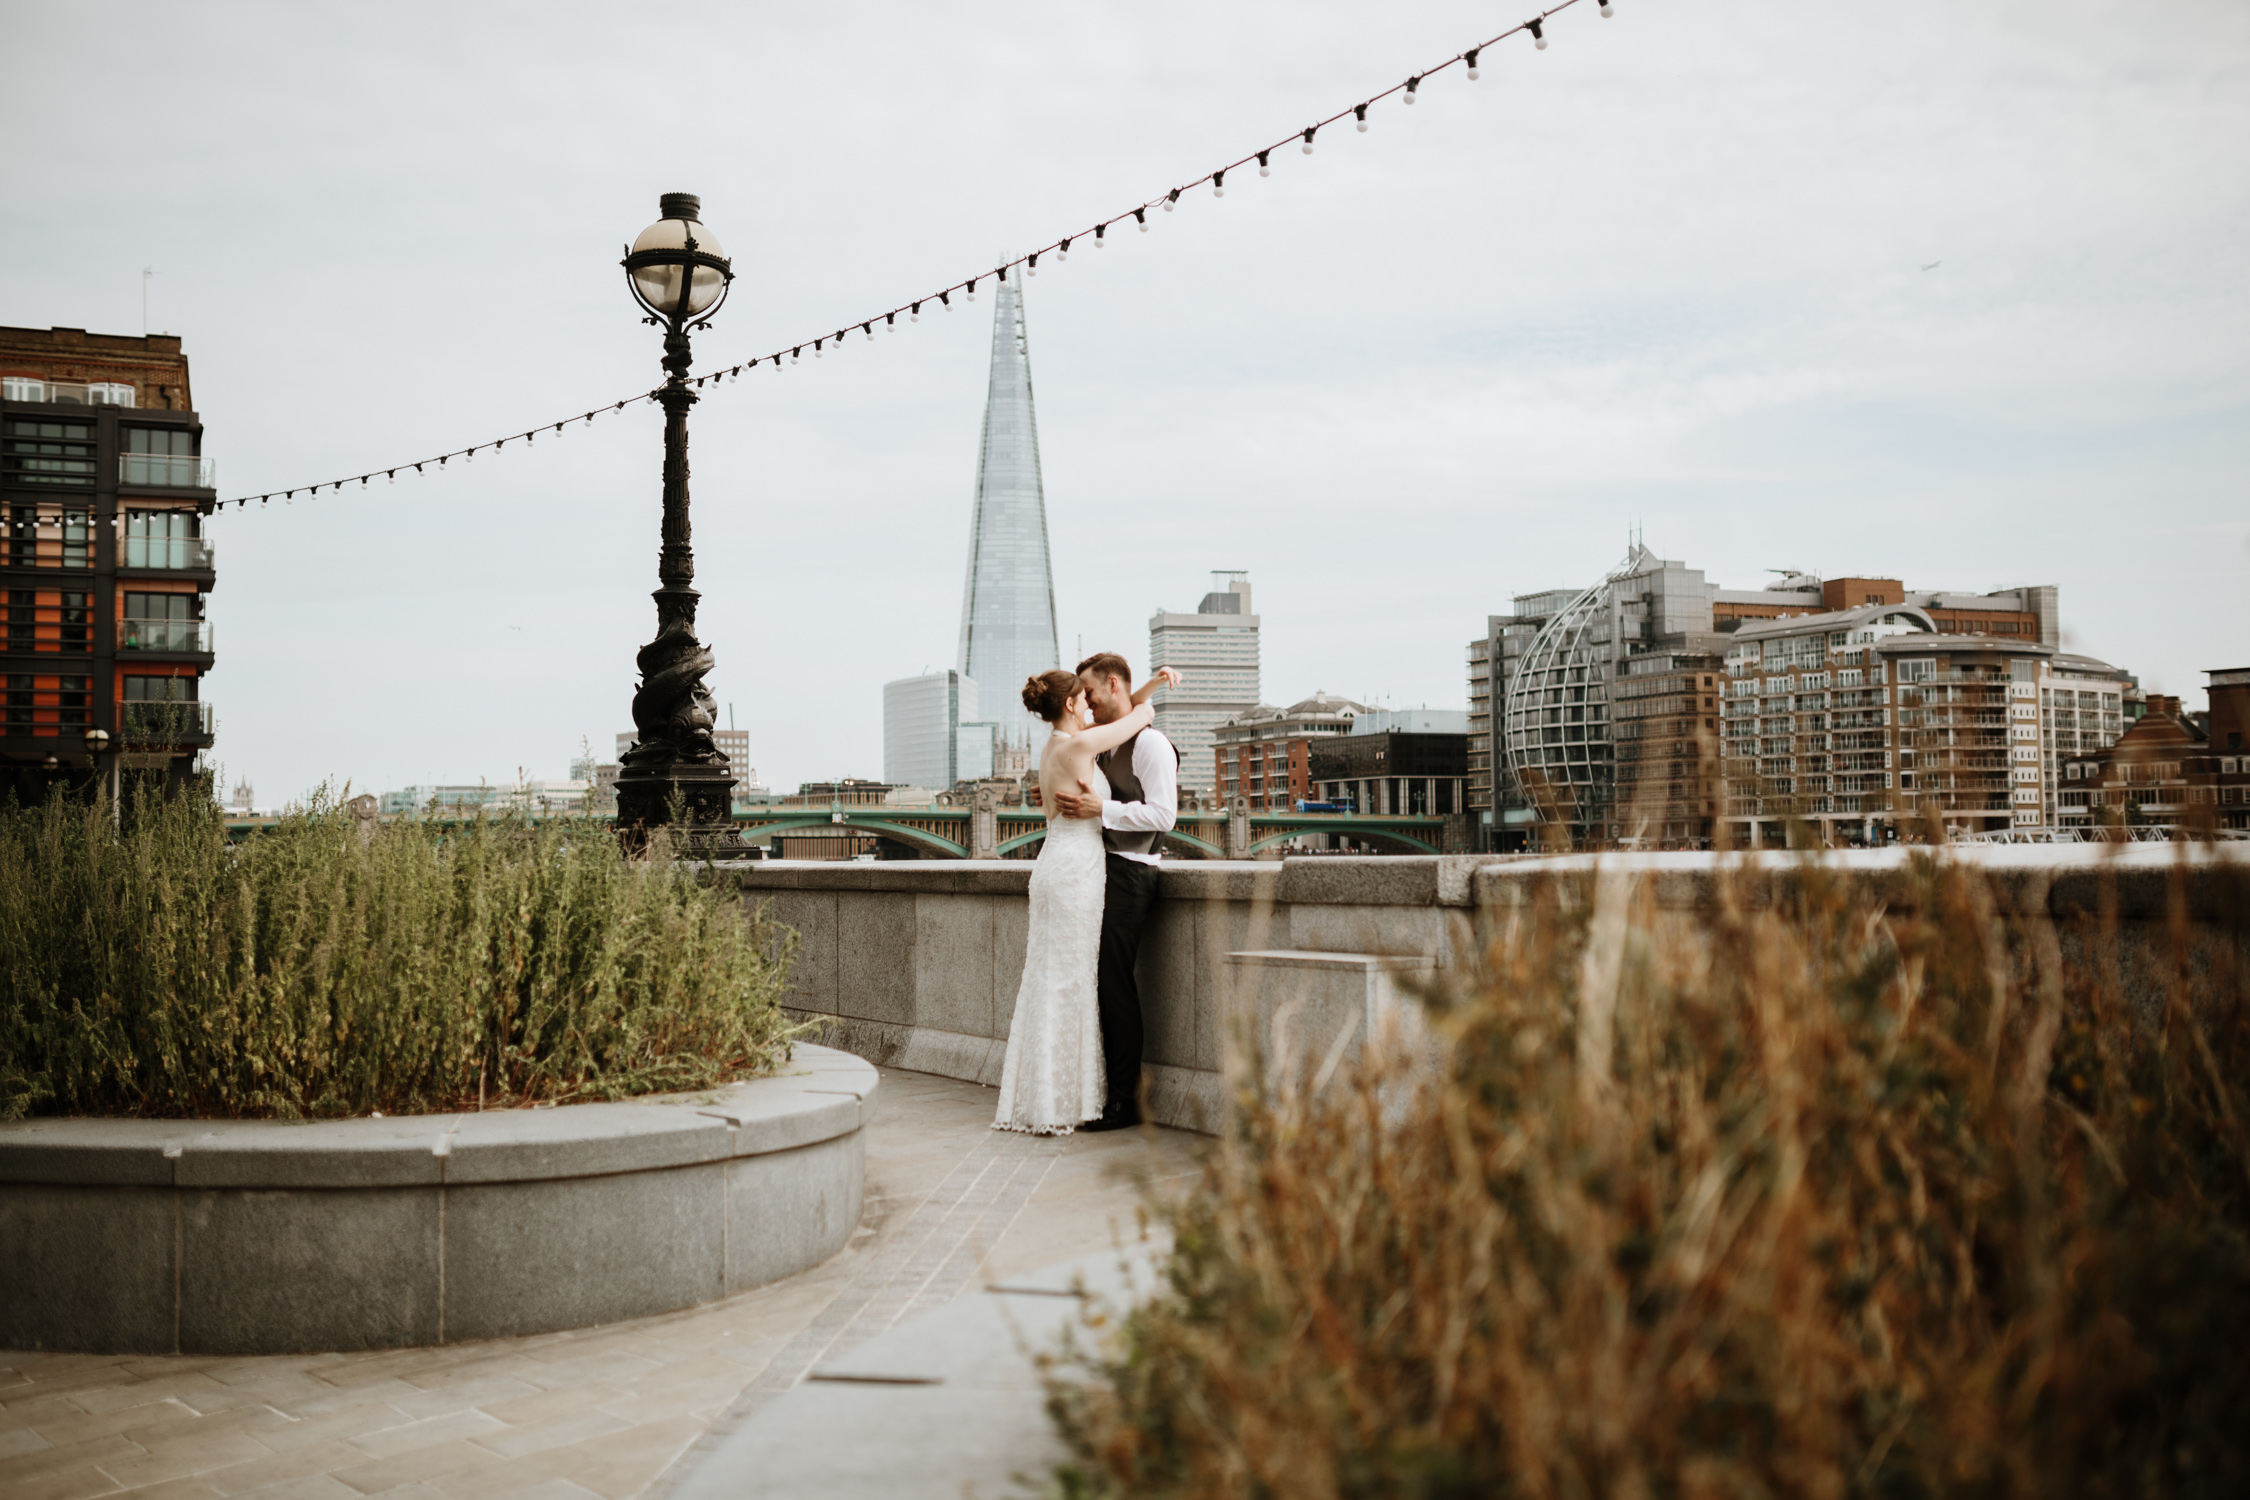 bride and groom kissing on a bridge in London after their elopement